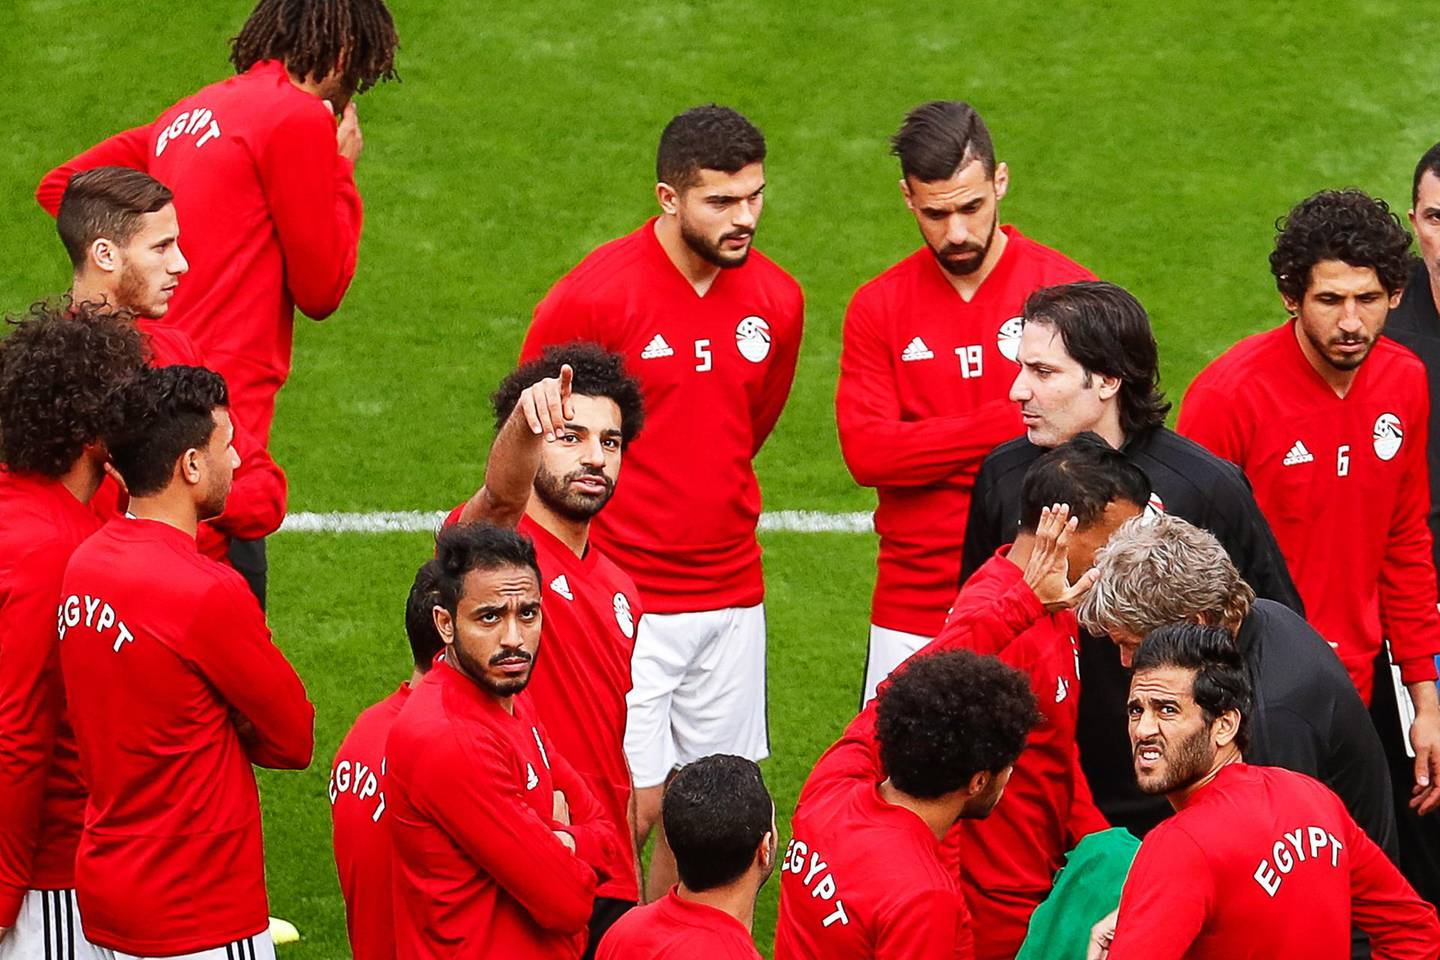 epa06806902 Egypt's Mohamed Salah (C) attends his team's training session in Ekaterinburg, Russia, 14 June 2018. Egypt will face Uruguay in the FIFA World Cup 2018 group A preliminary round soccer match on 15 June 2018.  (RESTRICTIONS APPLY: Editorial Use Only, not used in association with any commercial entity - Images must not be used in any form of alert service or push service of any kind including via mobile alert services, downloads to mobile devices or MMS messaging - Images must appear as still images and must not emulate match action video footage - No alteration is made to, and no text or image is superimposed over, any published image which: (a) intentionally obscures or removes a sponsor identification image; or (b) adds or overlays the commercial identification of any third party which is not officially associated with the FIFA World Cup)  EPA/ROMAN PILIPEY   EDITORIAL USE ONLY